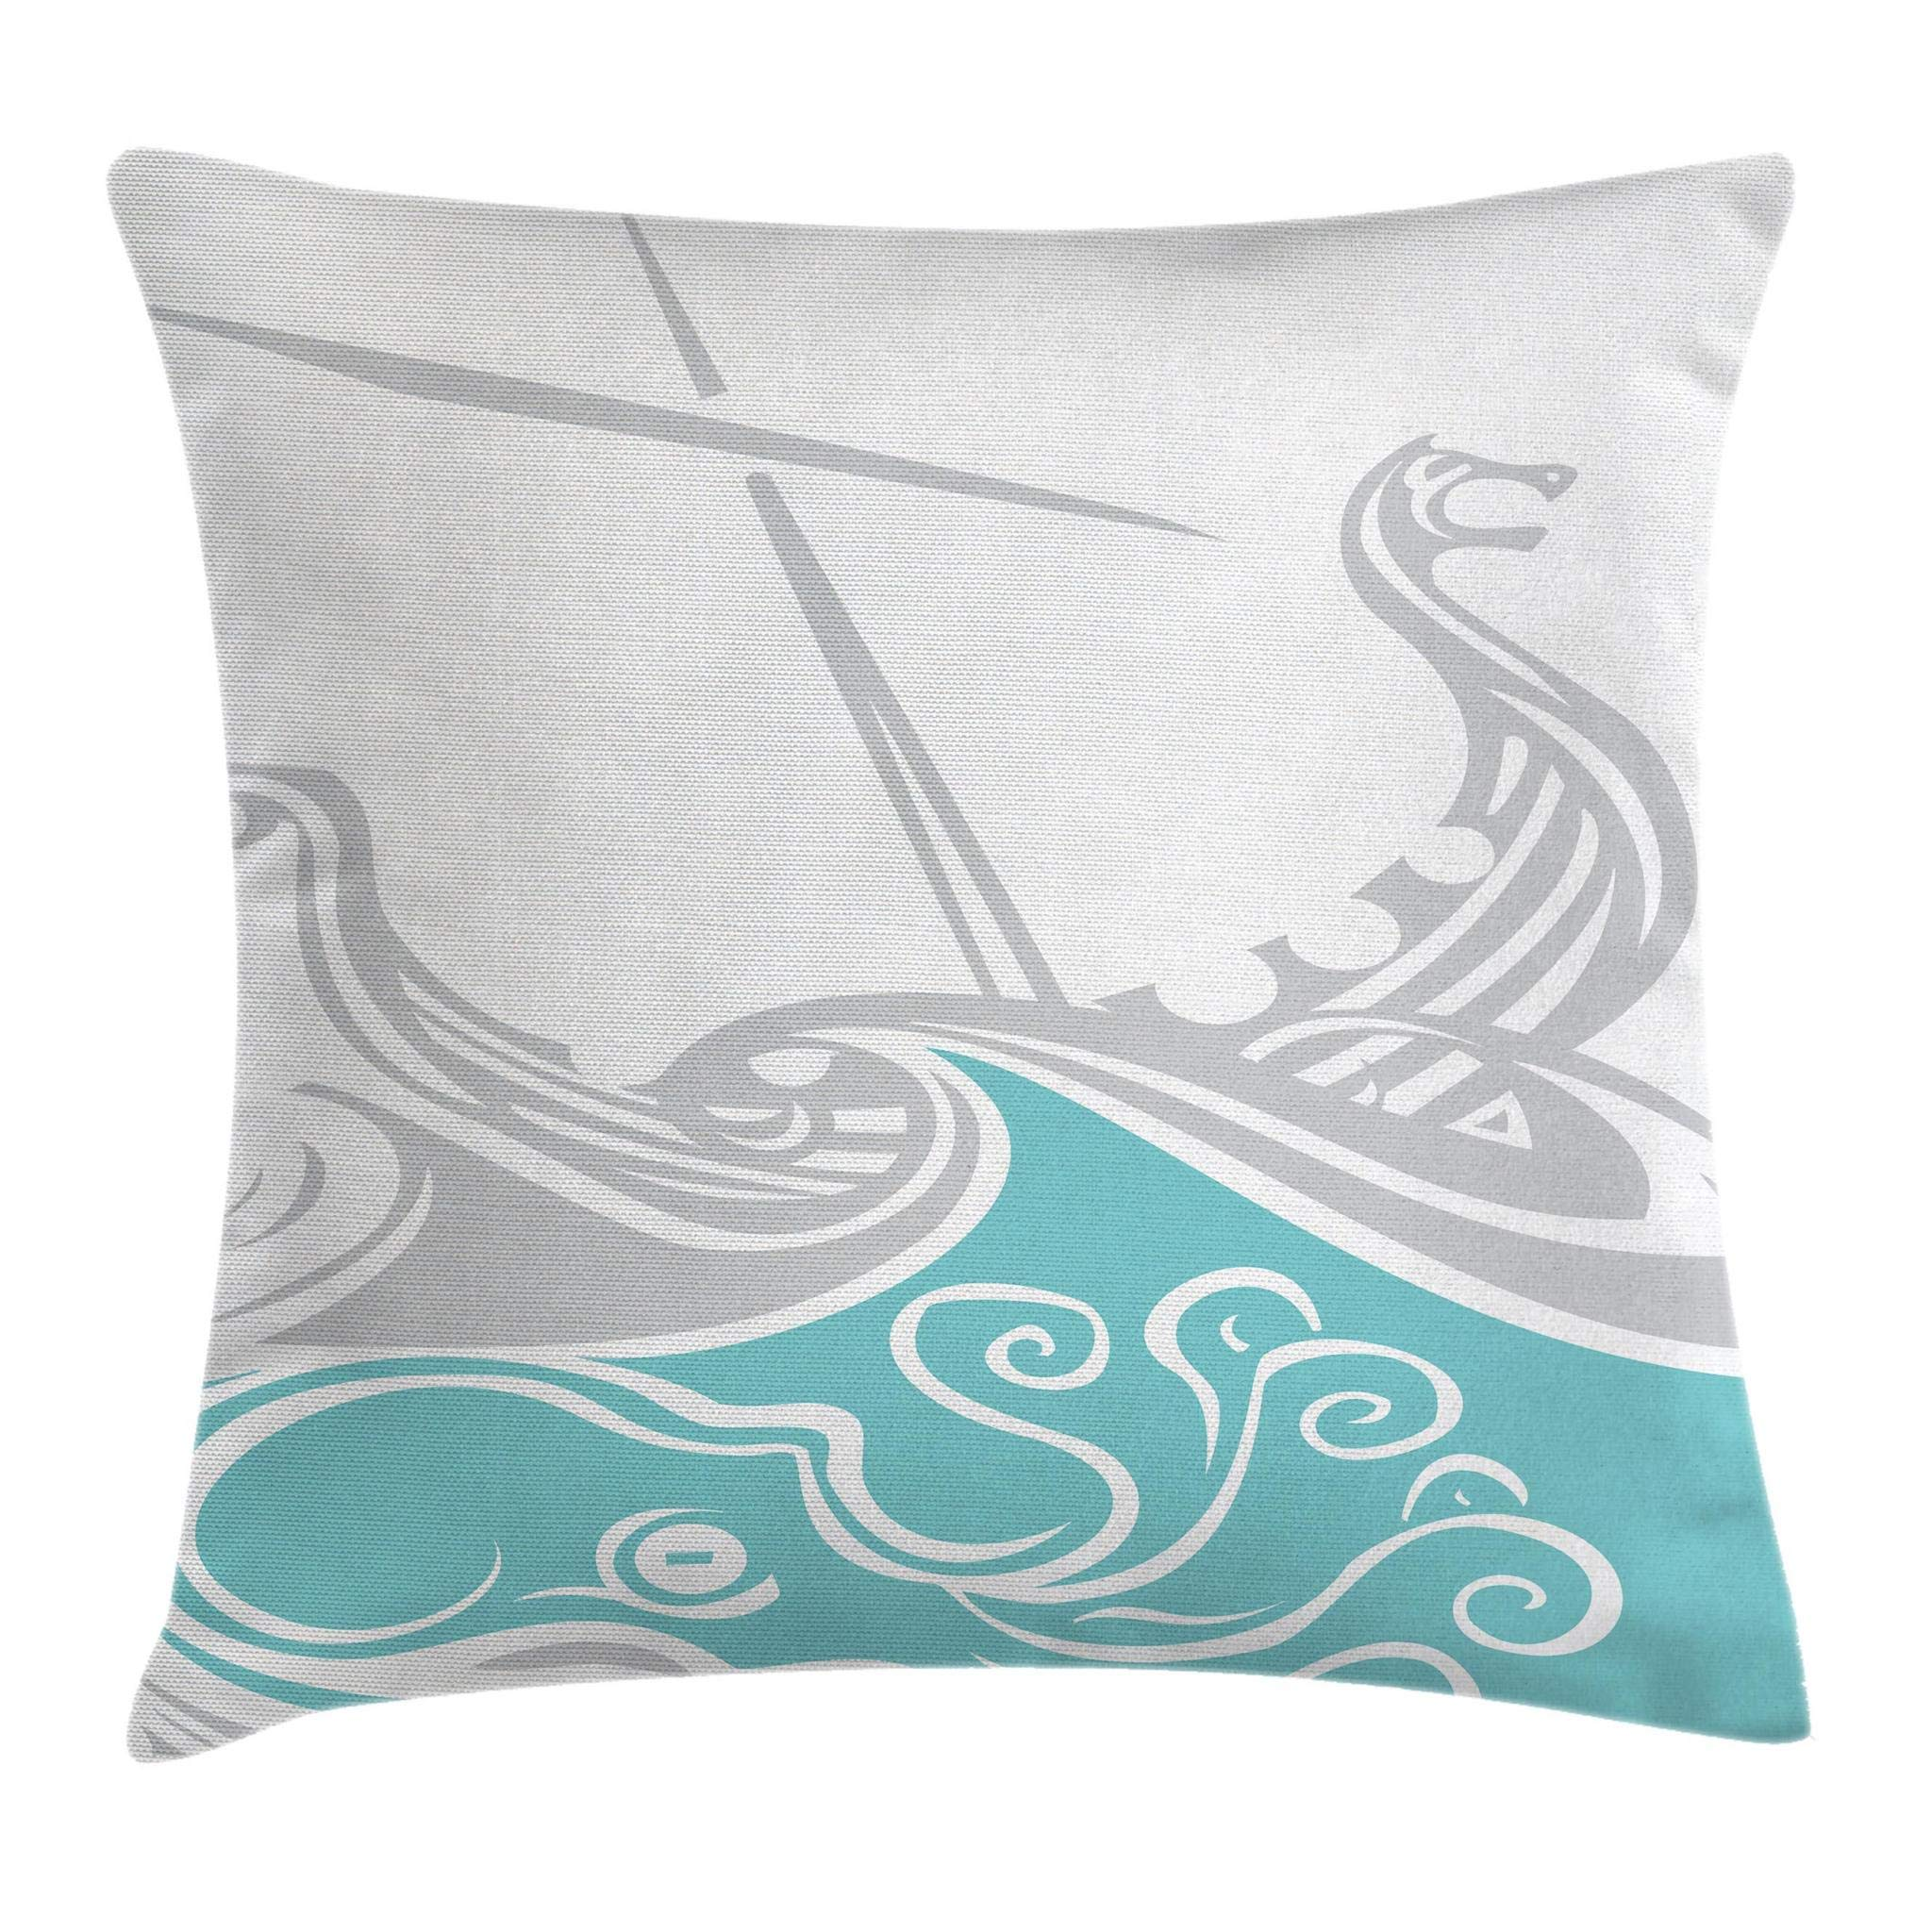 Ambesonne Kraken Decor Throw Pillow Cushion Cover by, Viking Longship Sailing into the Waves with Scandinavian Shields Retro Display, Decorative Square Accent Pillow Case, 18 X 18 Inches, Blue Grey